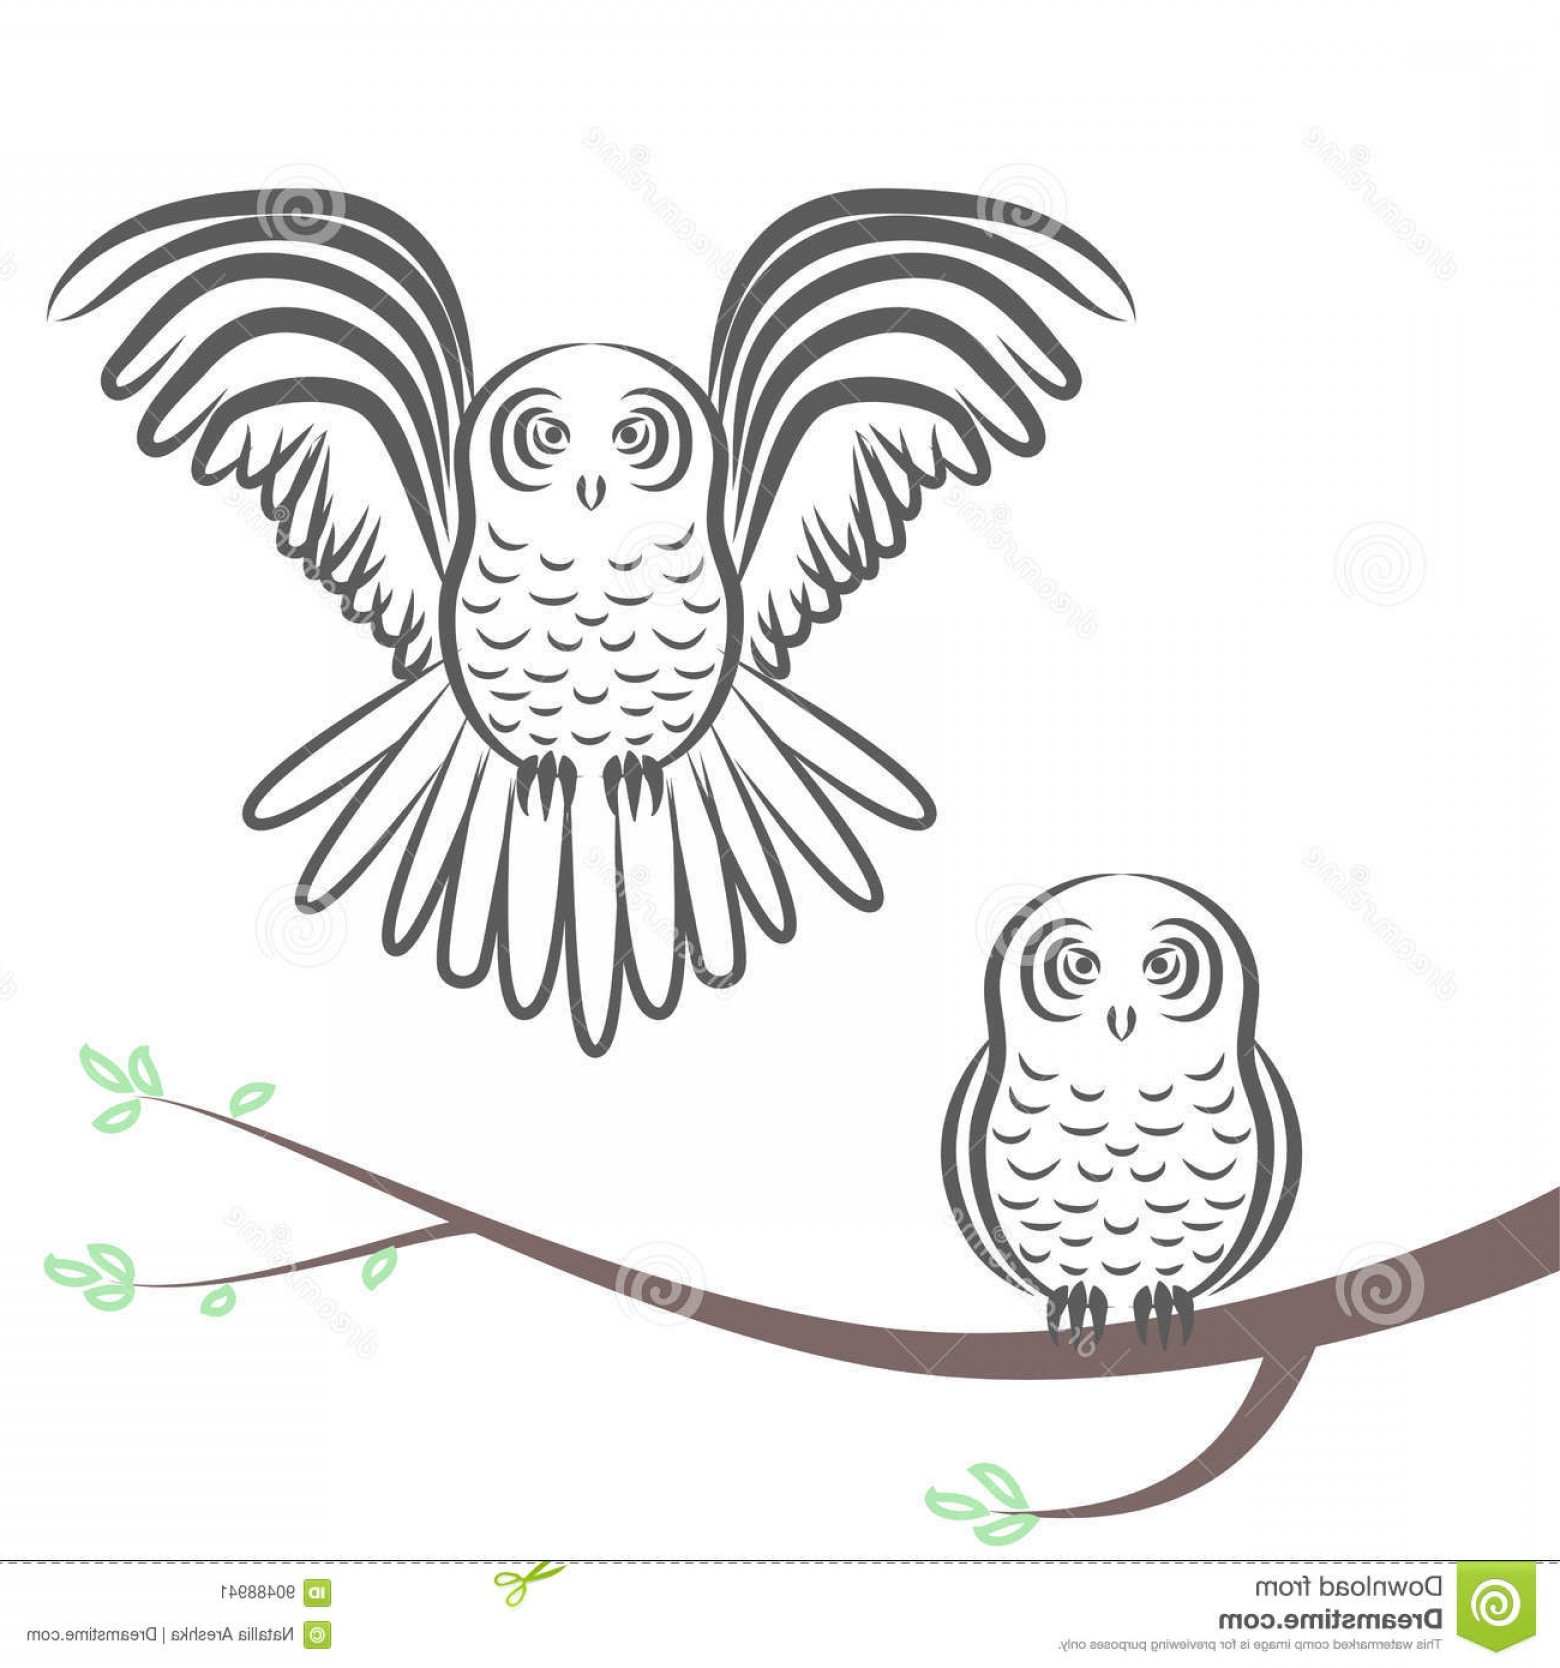 Owl Silhouette Vector Art: Stock Illustration Flying Sitting Owl Silhouette Branch Stock Vector Illustration Bird Couple One Flight Stretched Wings Image